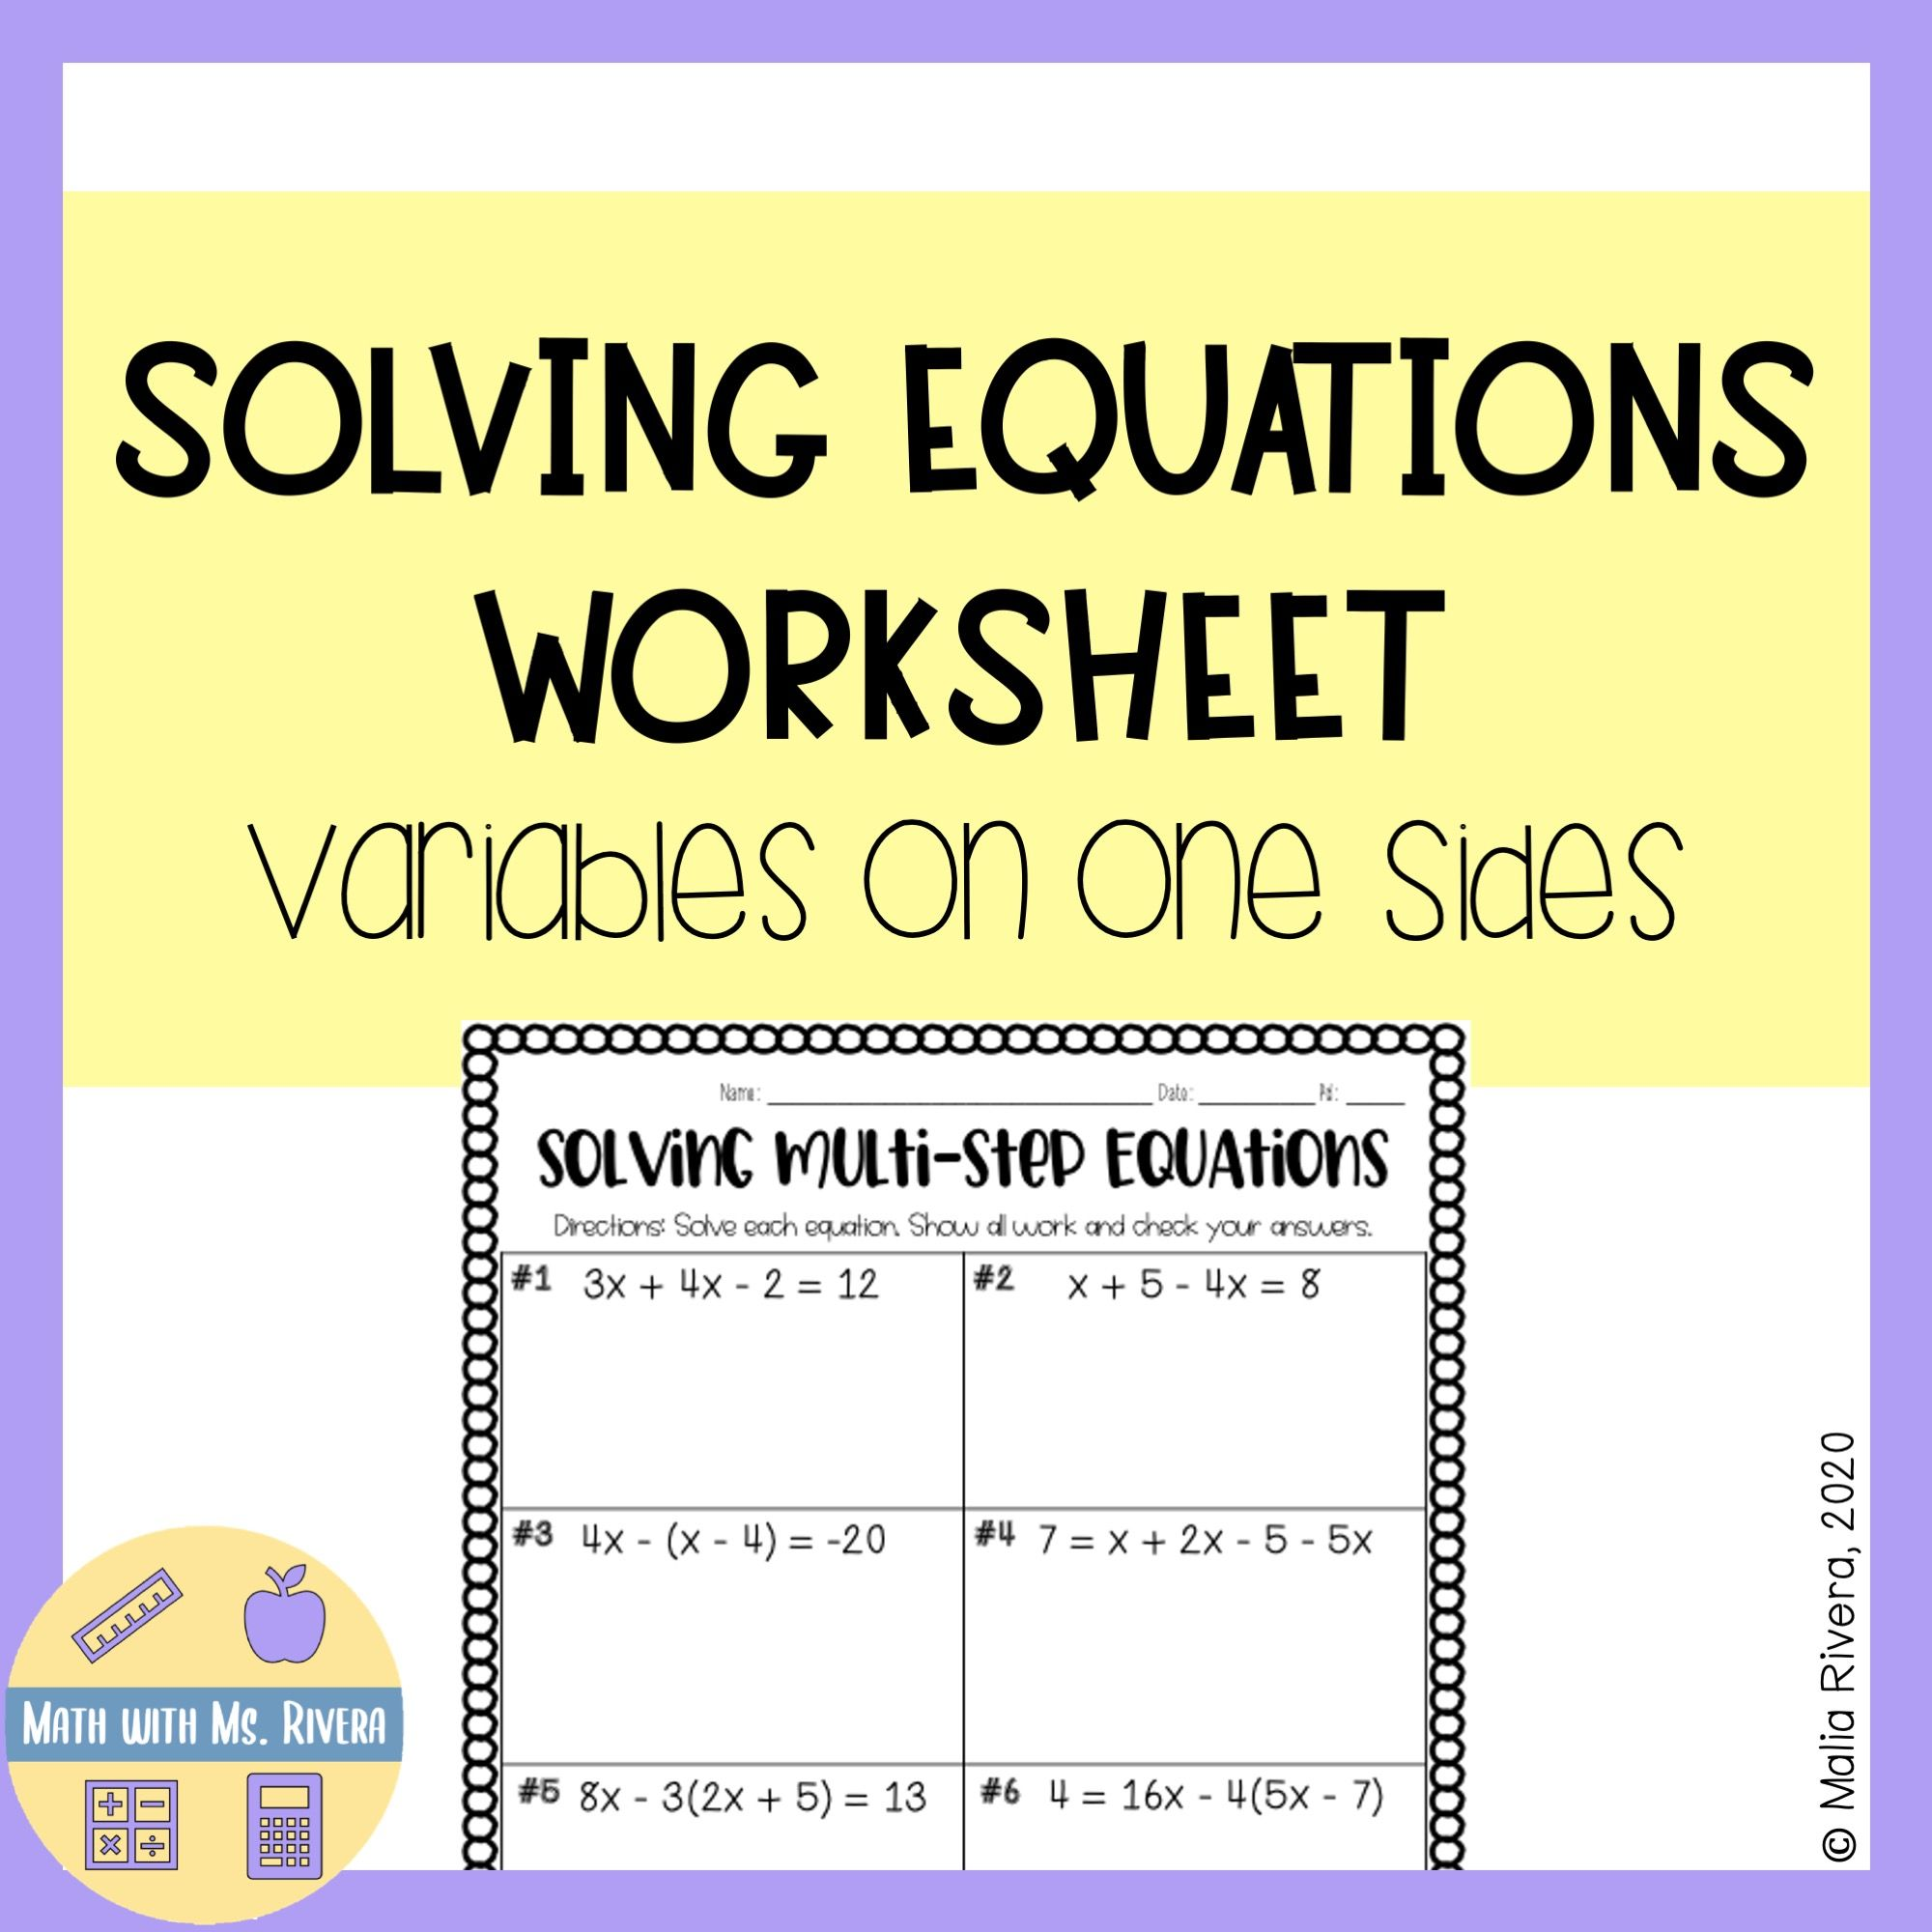 Solving Multistep Equations With Variables On One Side Worksheet Solving Multi Step Equations Multi Step Equations Equations